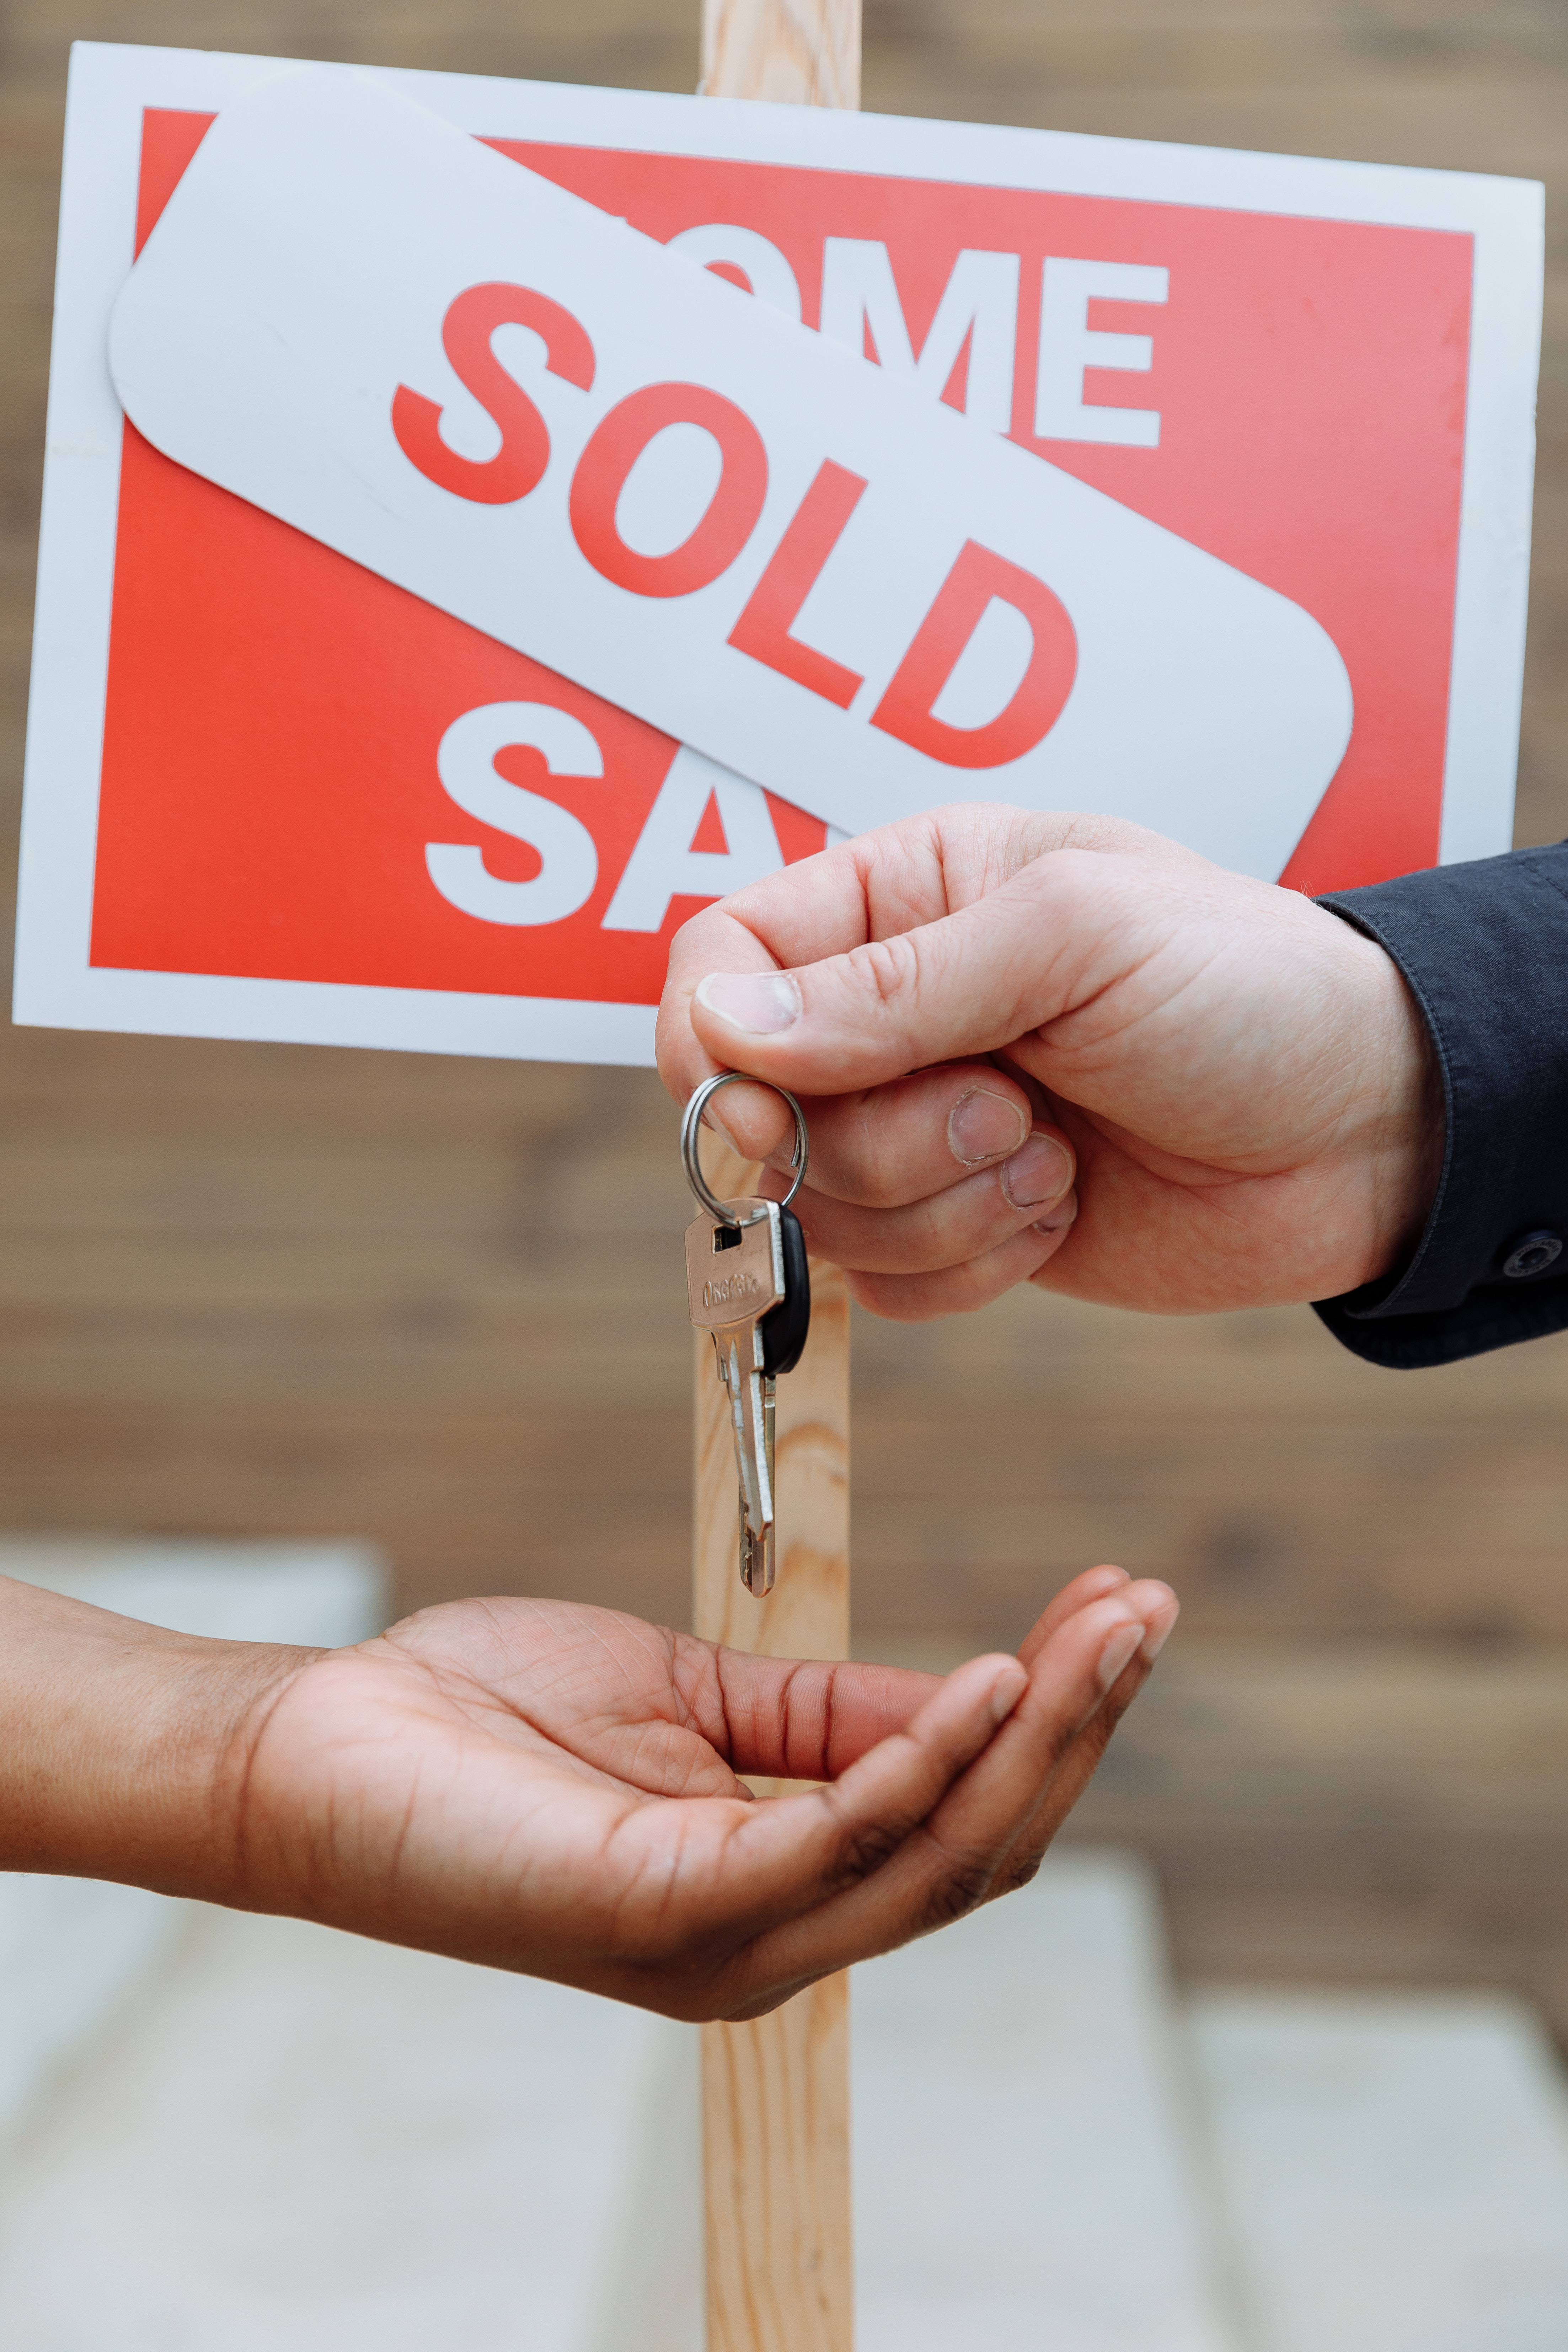 When Should You Purchase Your First Home?